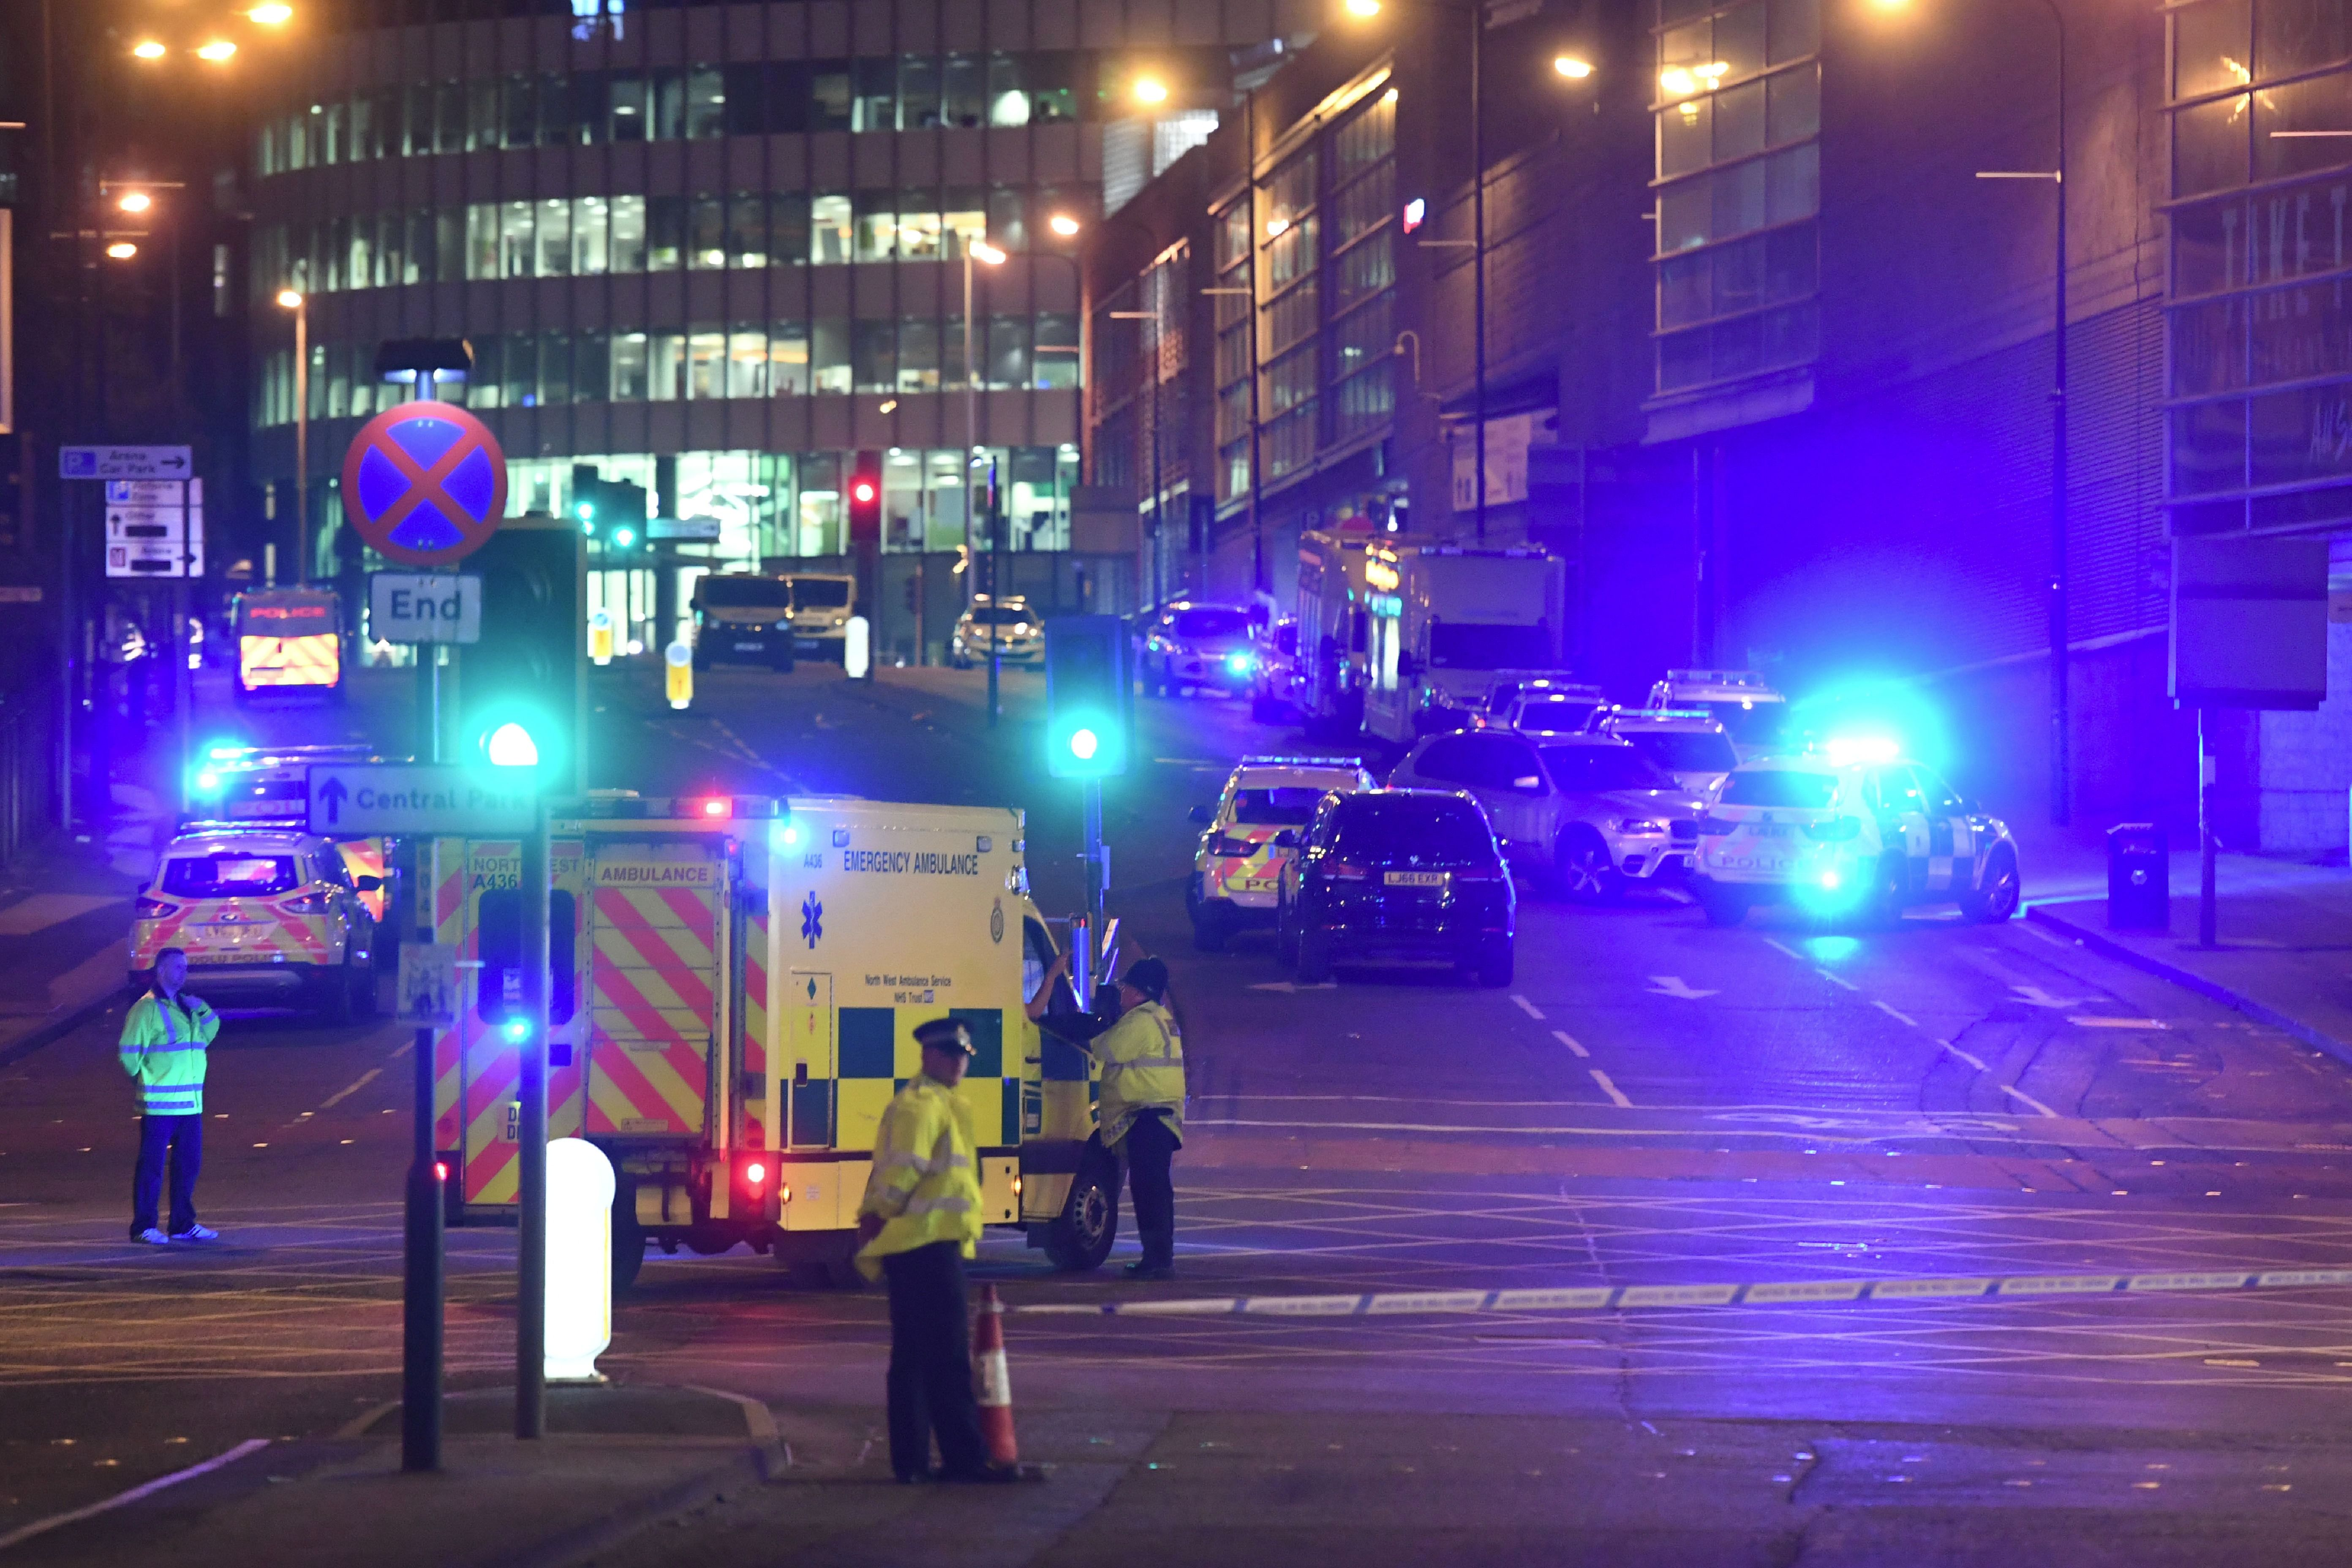 Emergency response vehicles are parked at the scene of a terrorist attack during a concert by Ariana Grande in Manchester, England, May 23, 2017.